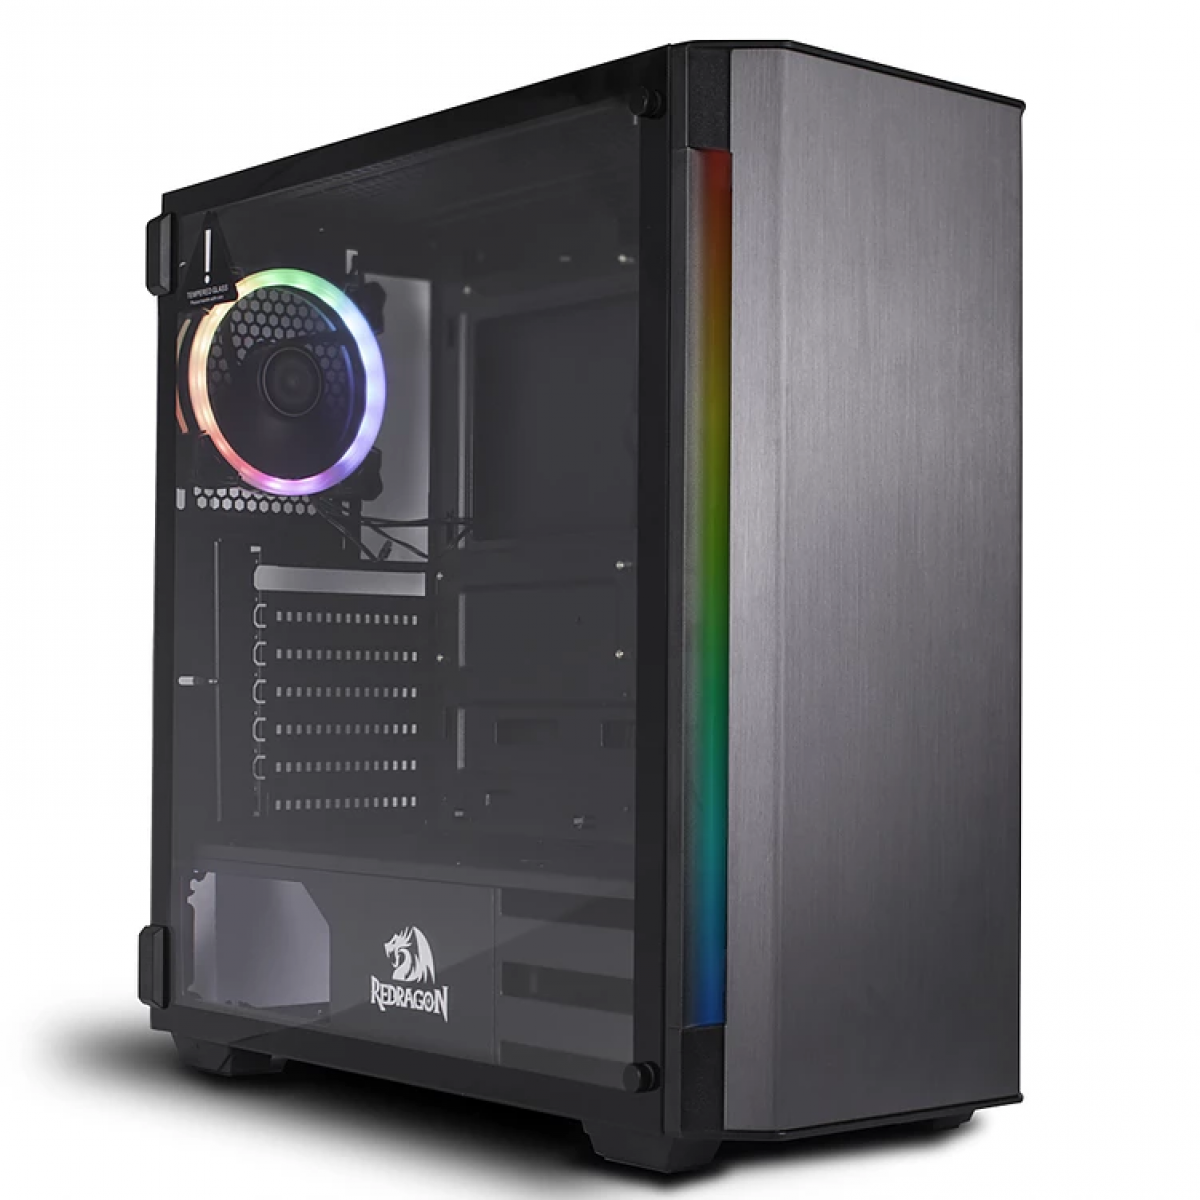 Pc Gamer Super T-General Lvl-5 AMD Ryzen 5 3600X / GeForce RTX 2060 6GB / DDR4 8GB / HD 1TB / 600W / RZ3